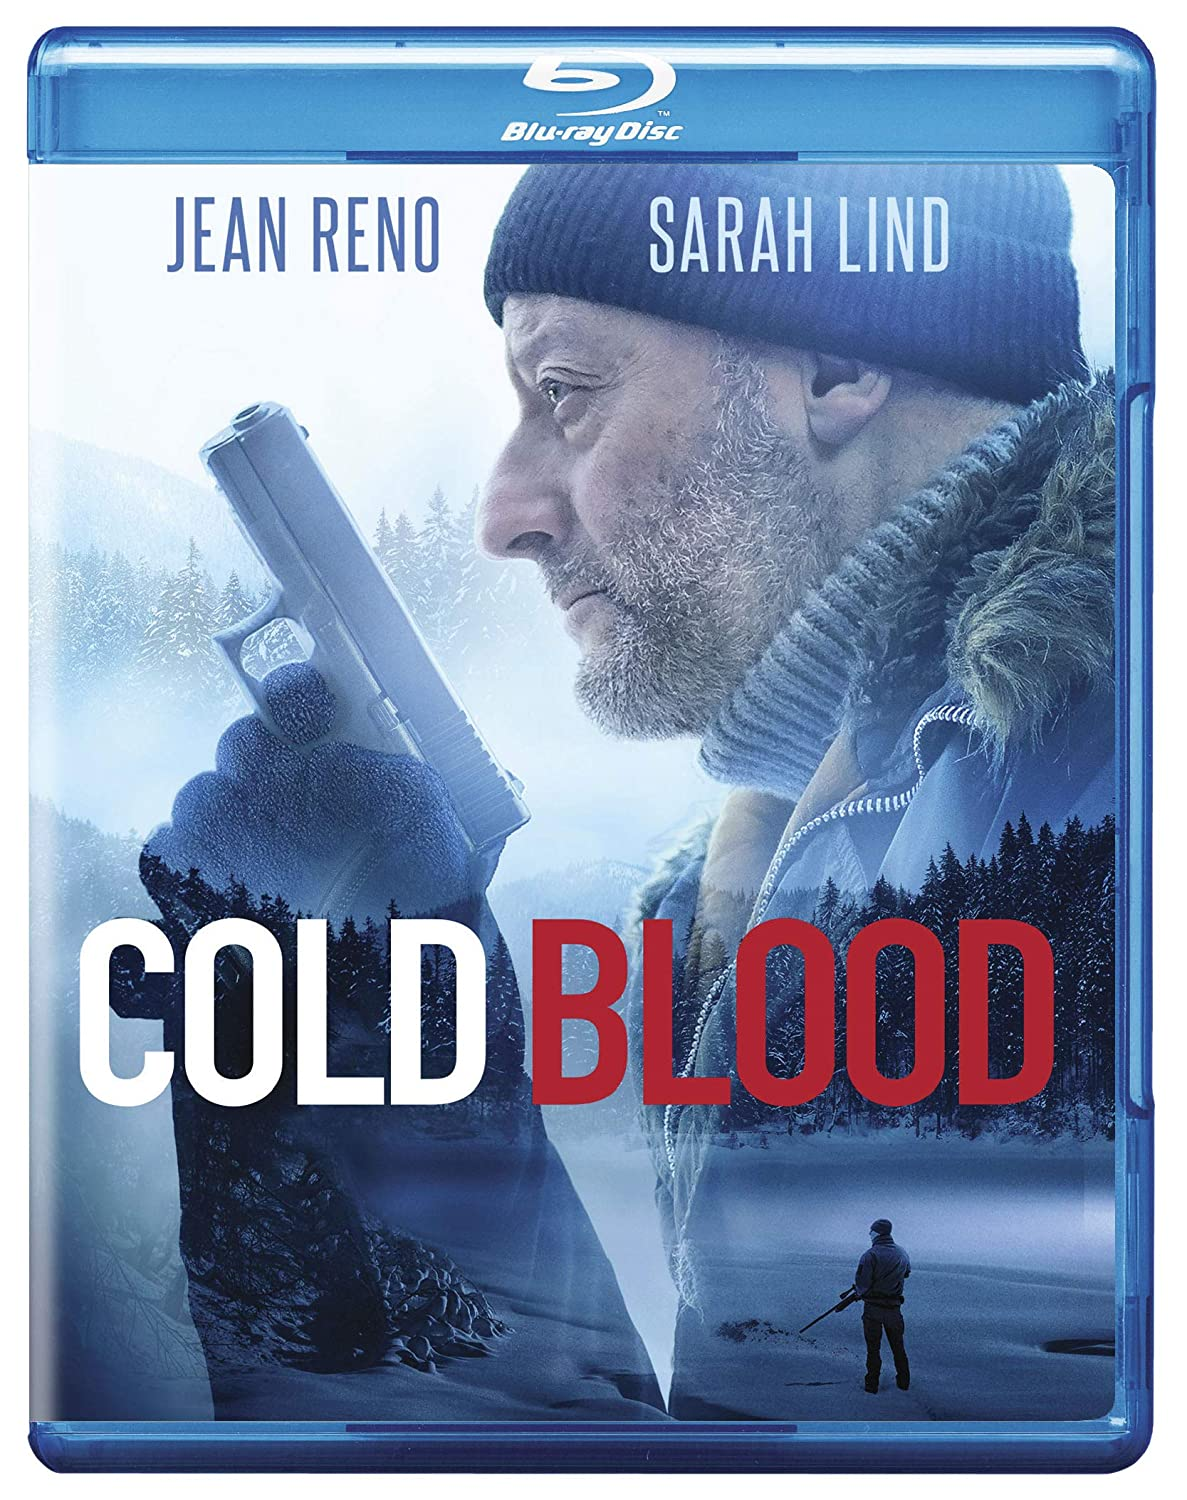 Amazon.com: Cold Blood [Blu-ray]: Jean Reno, Sarah Lind, Joe Anderson:  Movies & TV